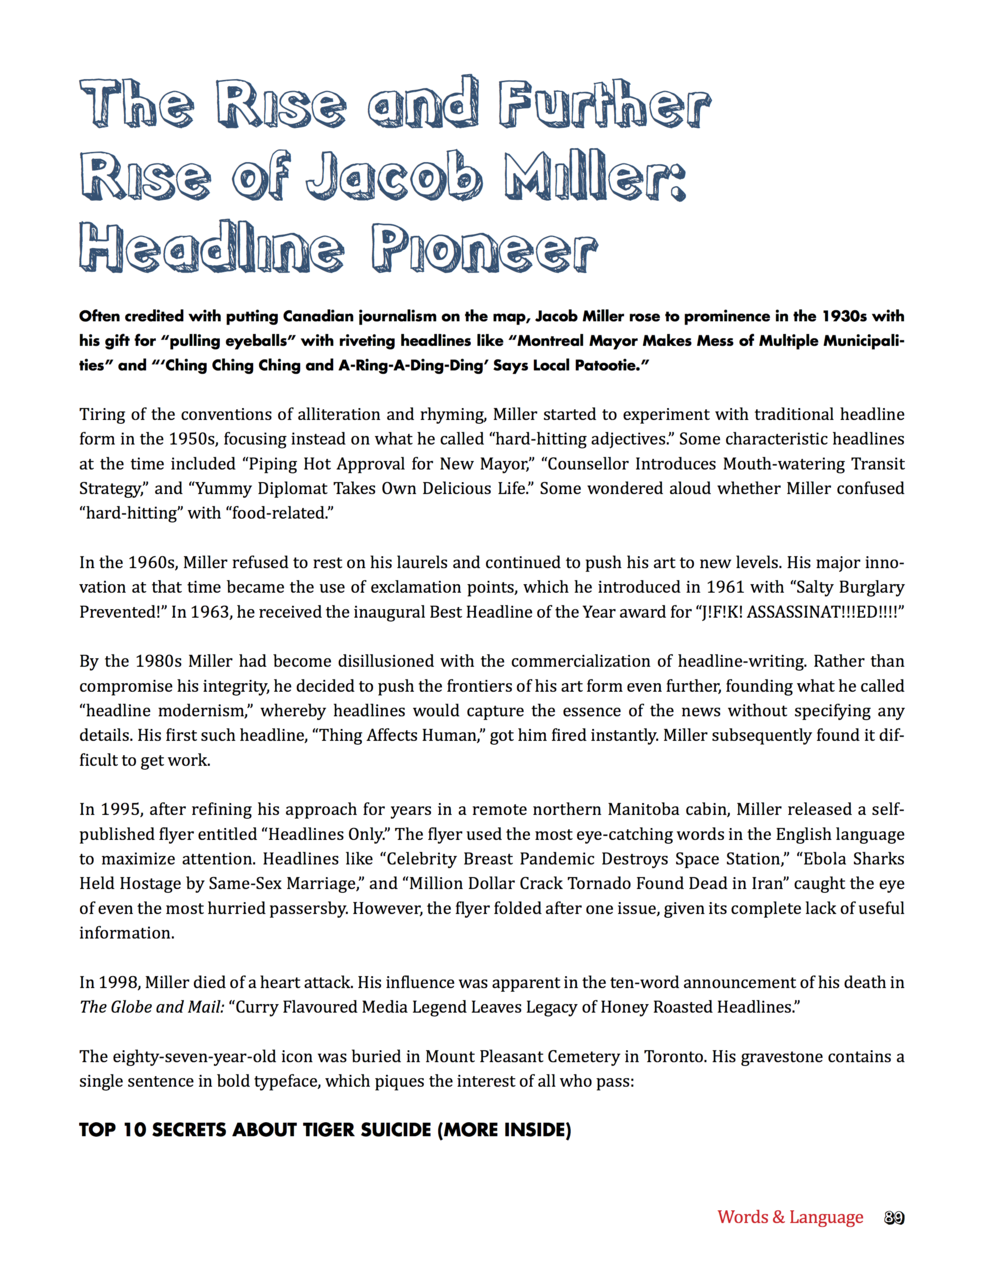 Jacob Miller - Headline Pioneer.png